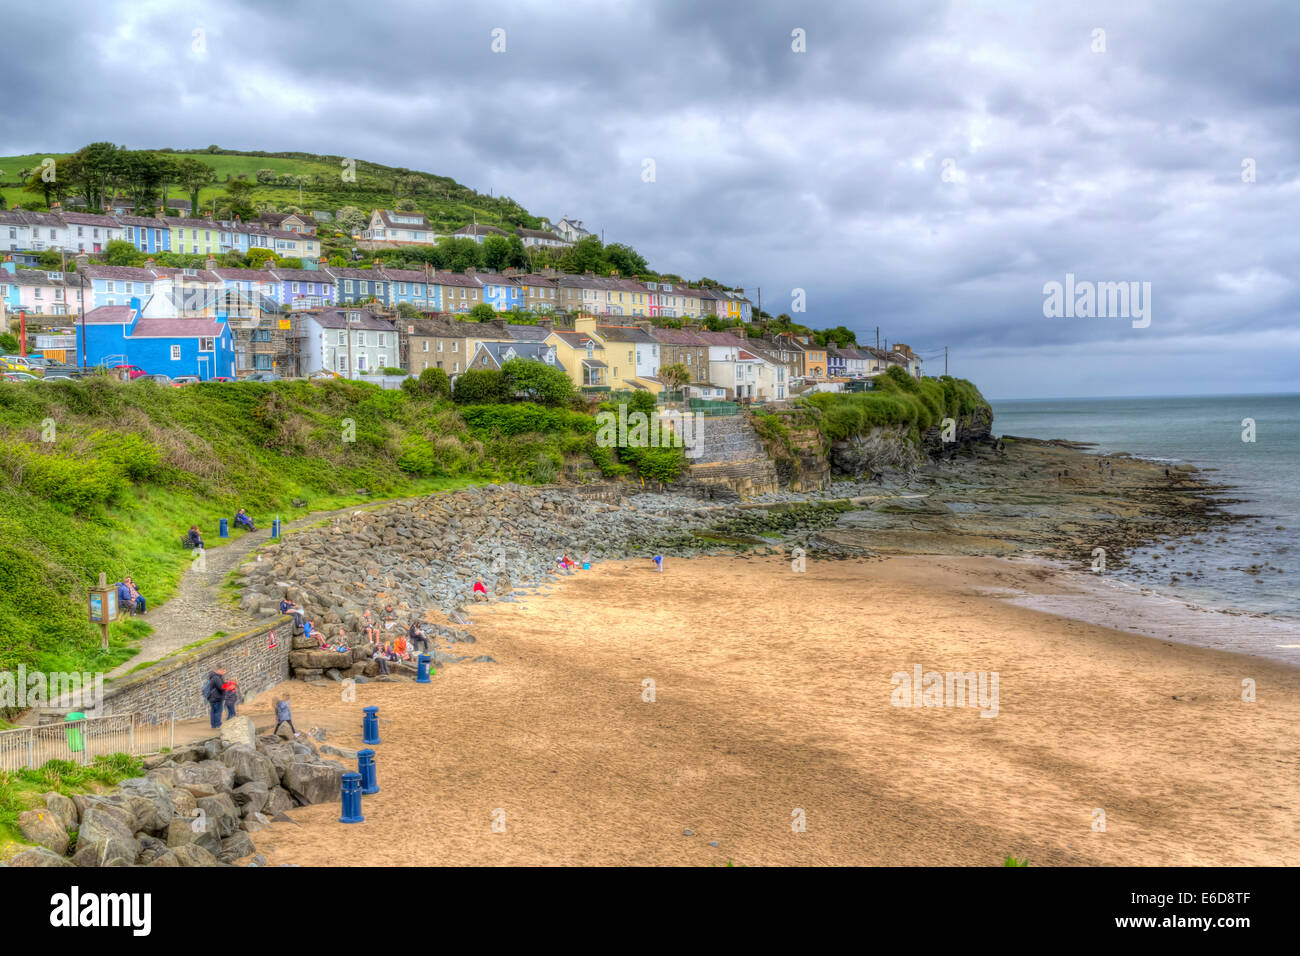 HDR shot of the beach at New Quay Wales UK Europe - Stock Image